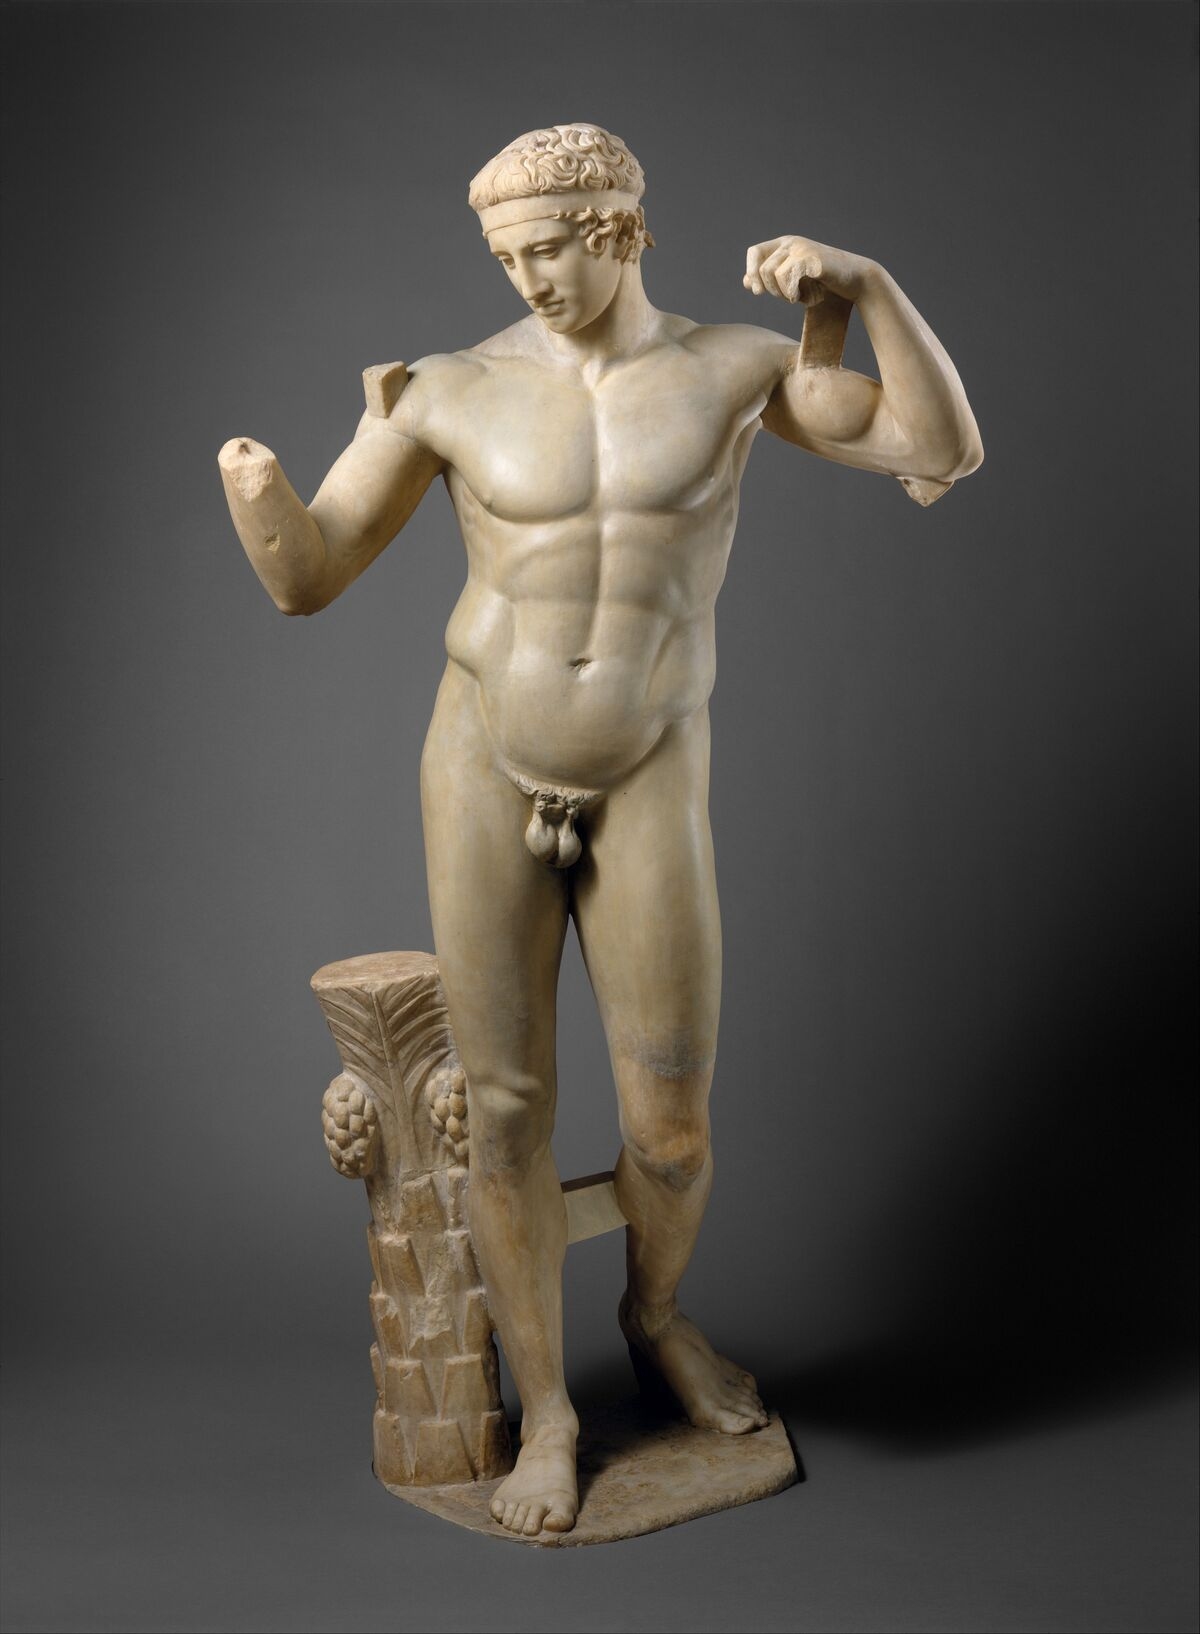 Copy of work attributed to Polykleitos, ca. A.D. 69–96, via the Metropolitan Museum of Art.